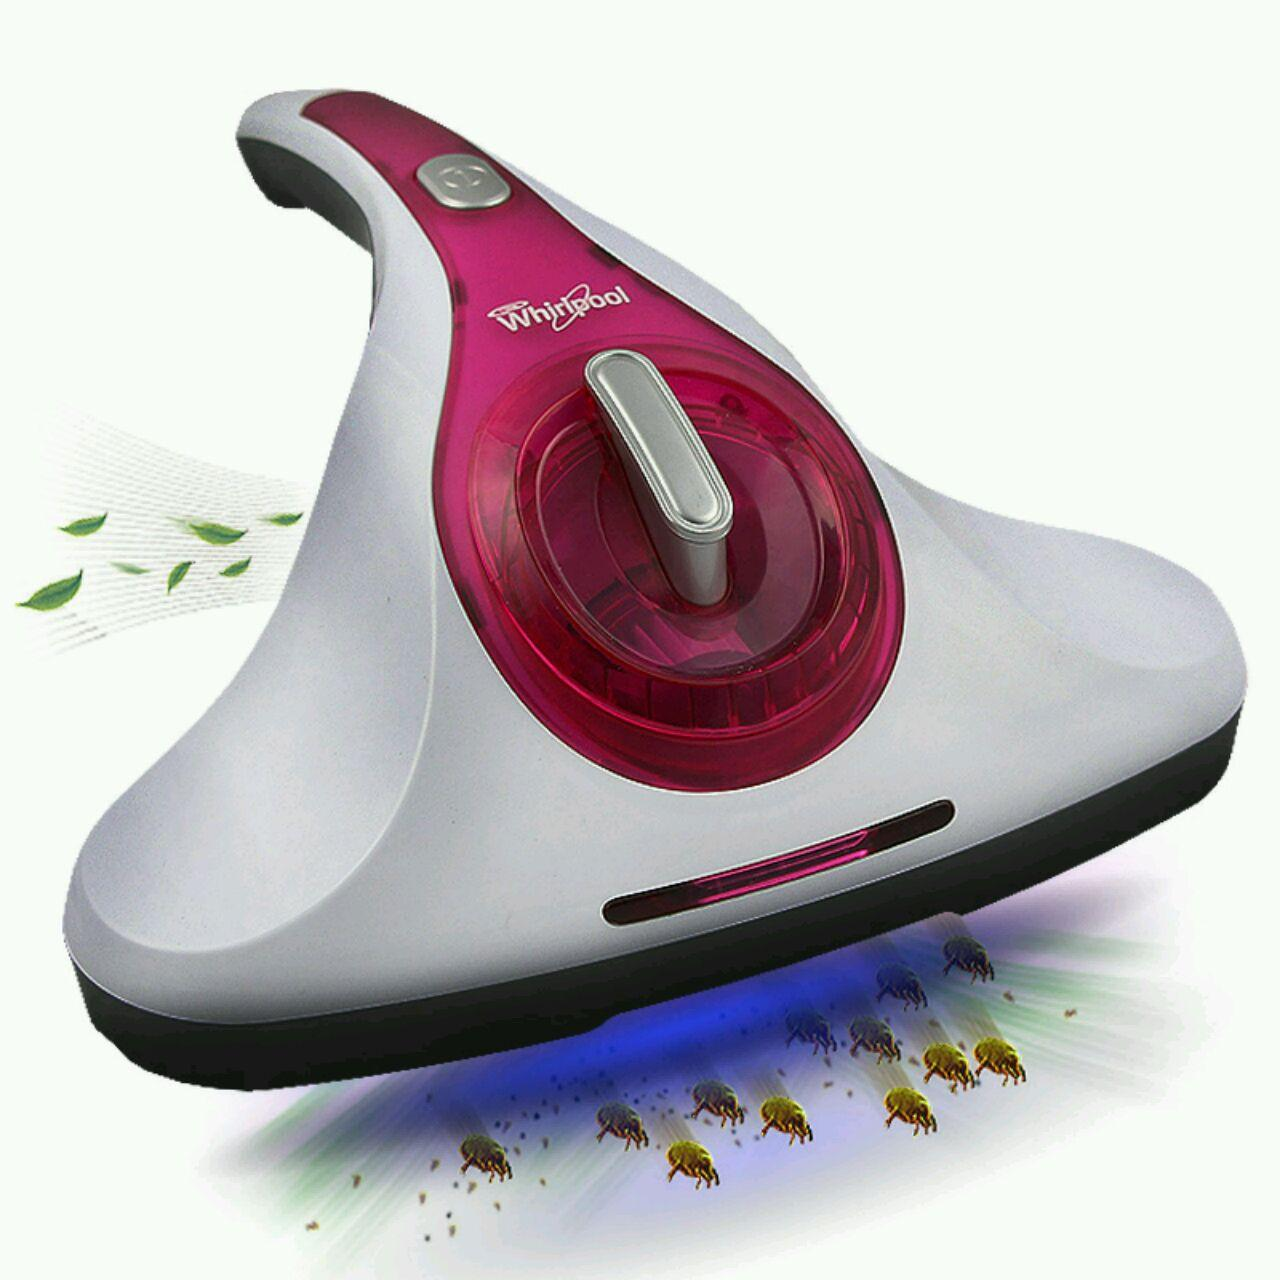 Whirlpool Uv Mite Killer/ Anti Dust Mite Uv Vacuum Bed Cleaner/ Reliable Quality/popular Brand By Lifepro.